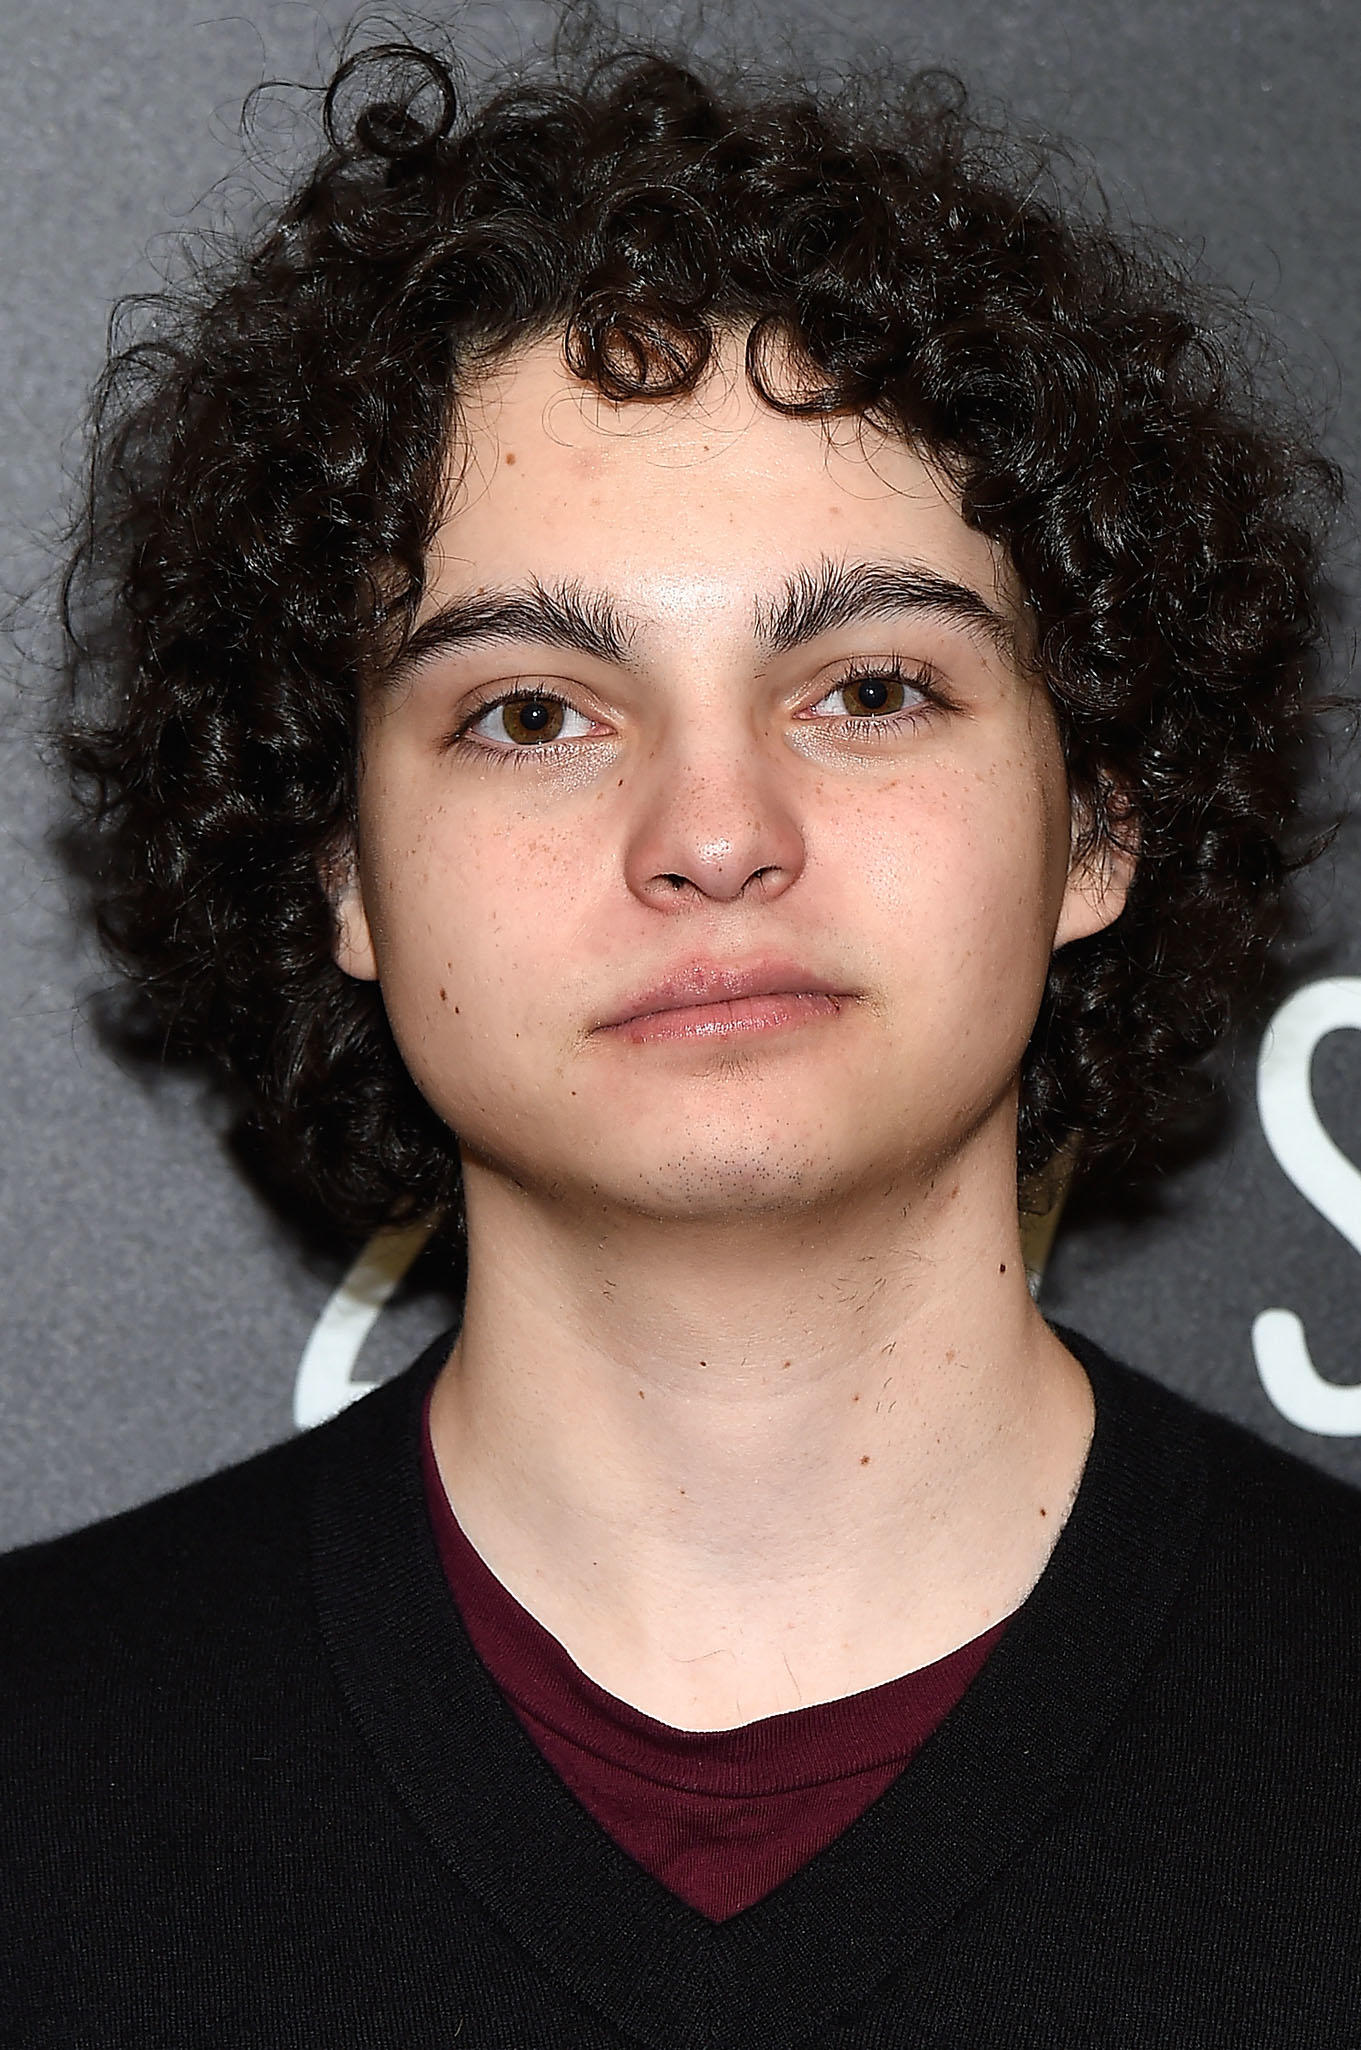 Max Burkholder during the 2017 Sundance Film Festival.